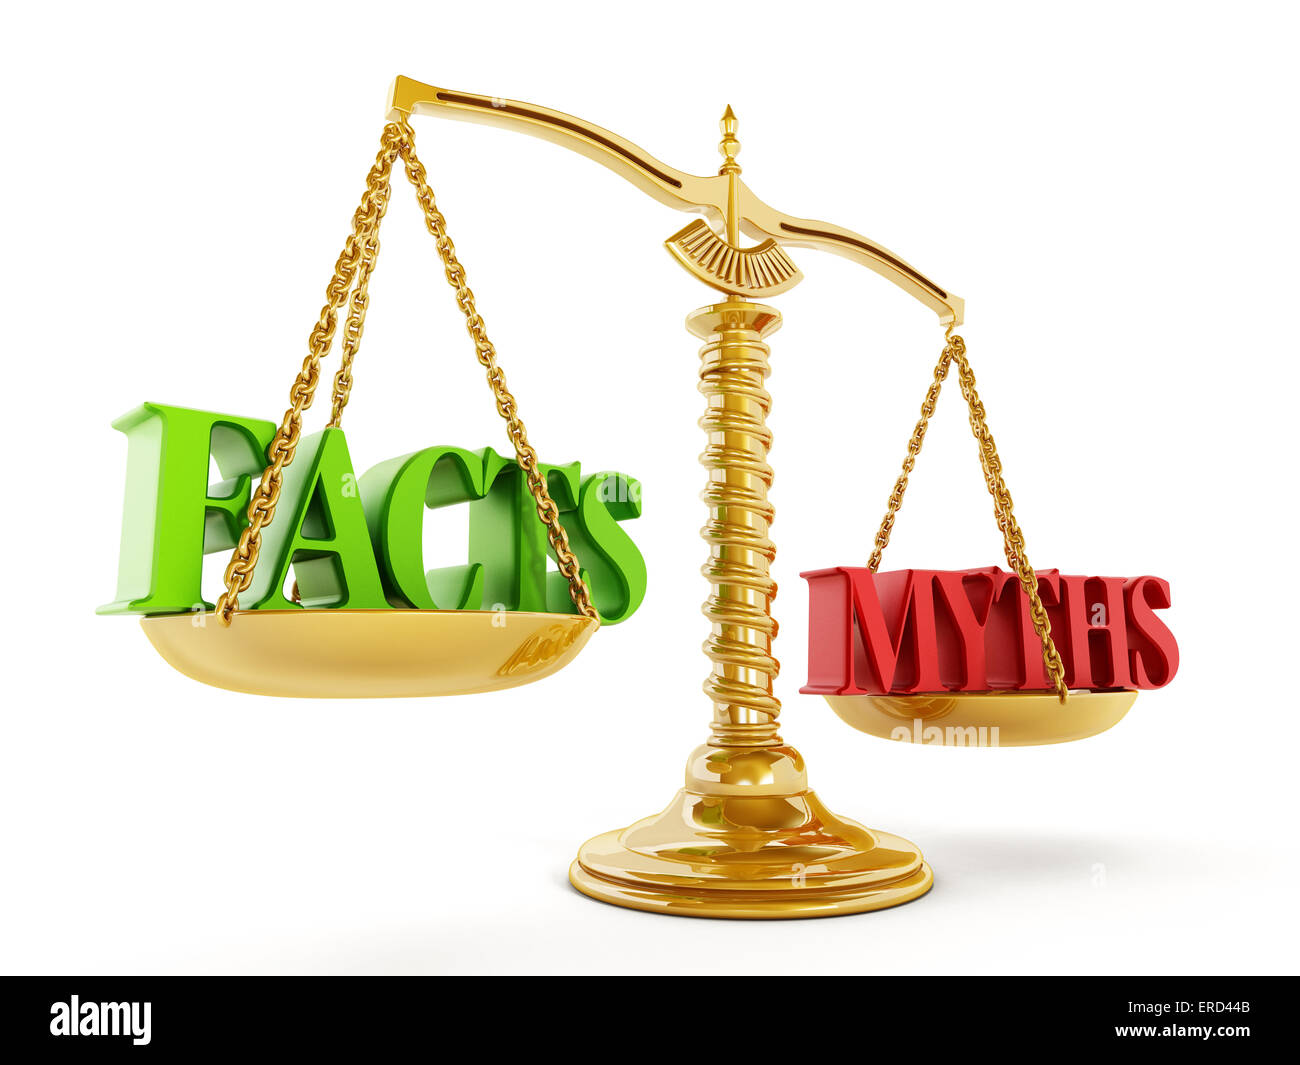 Facts and Myths texts on blanced scale - Stock Image